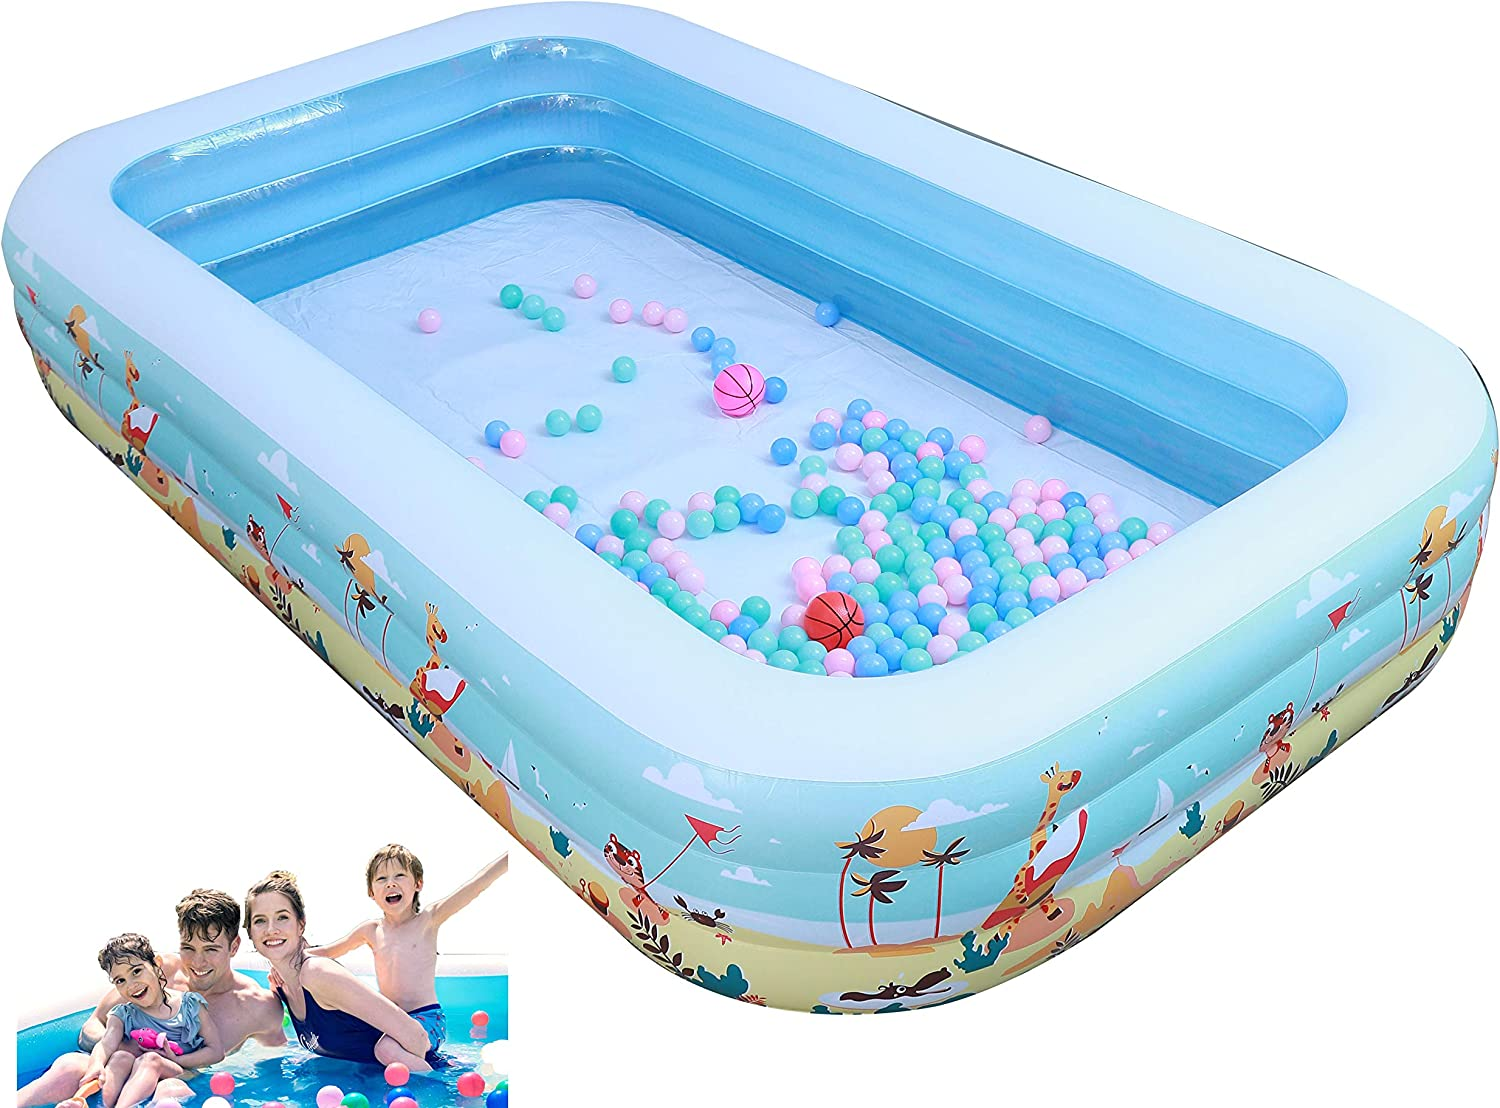 Inflatable Pool Blow Up Regular Nippon regular agency store Ground for Full-Sized Kids Swimming